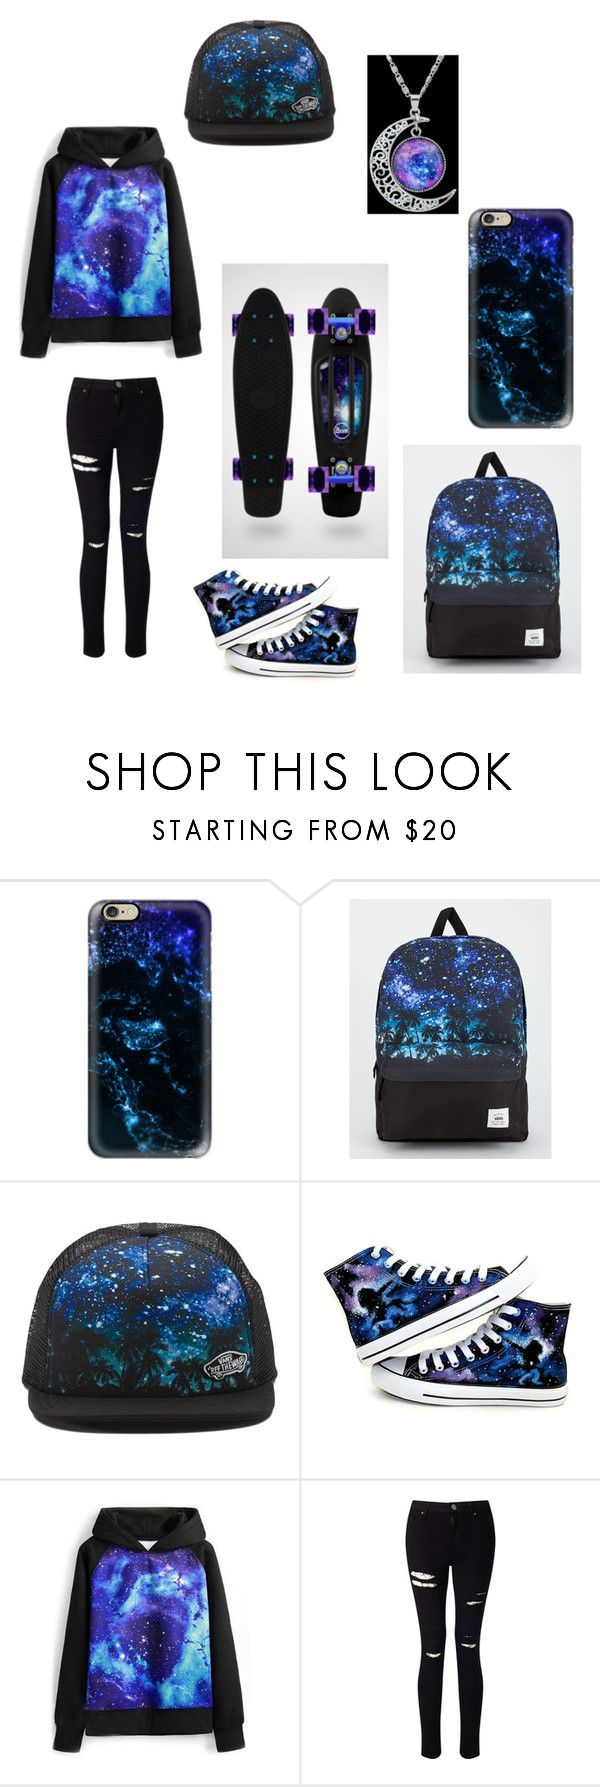 """Untitled #83"" by darksoul7 ❤ liked on Polyvore featuring Casetify, Vans, Converse, WithChic and Miss Selfridge"